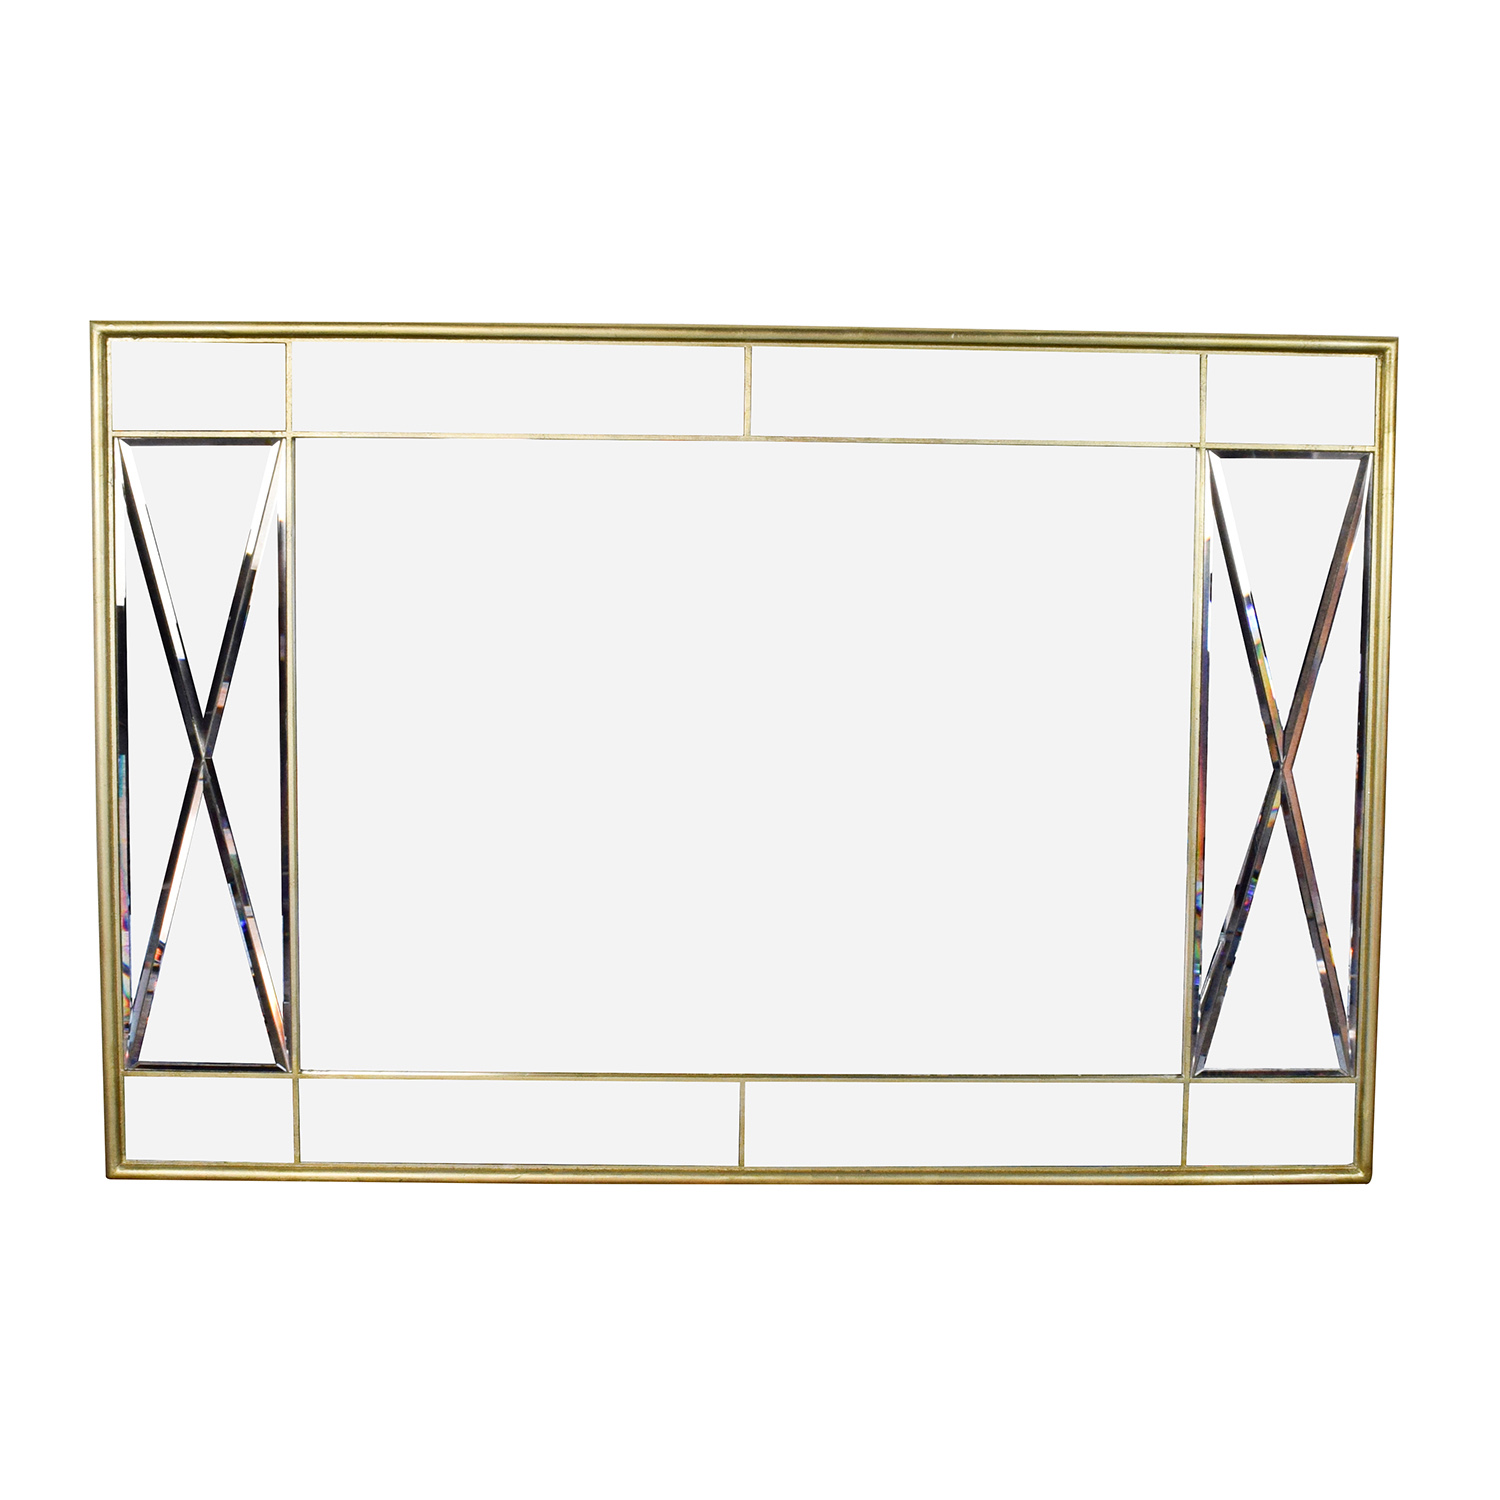 Macy's Macy's Ailey Gold Framed  Mirror coupon